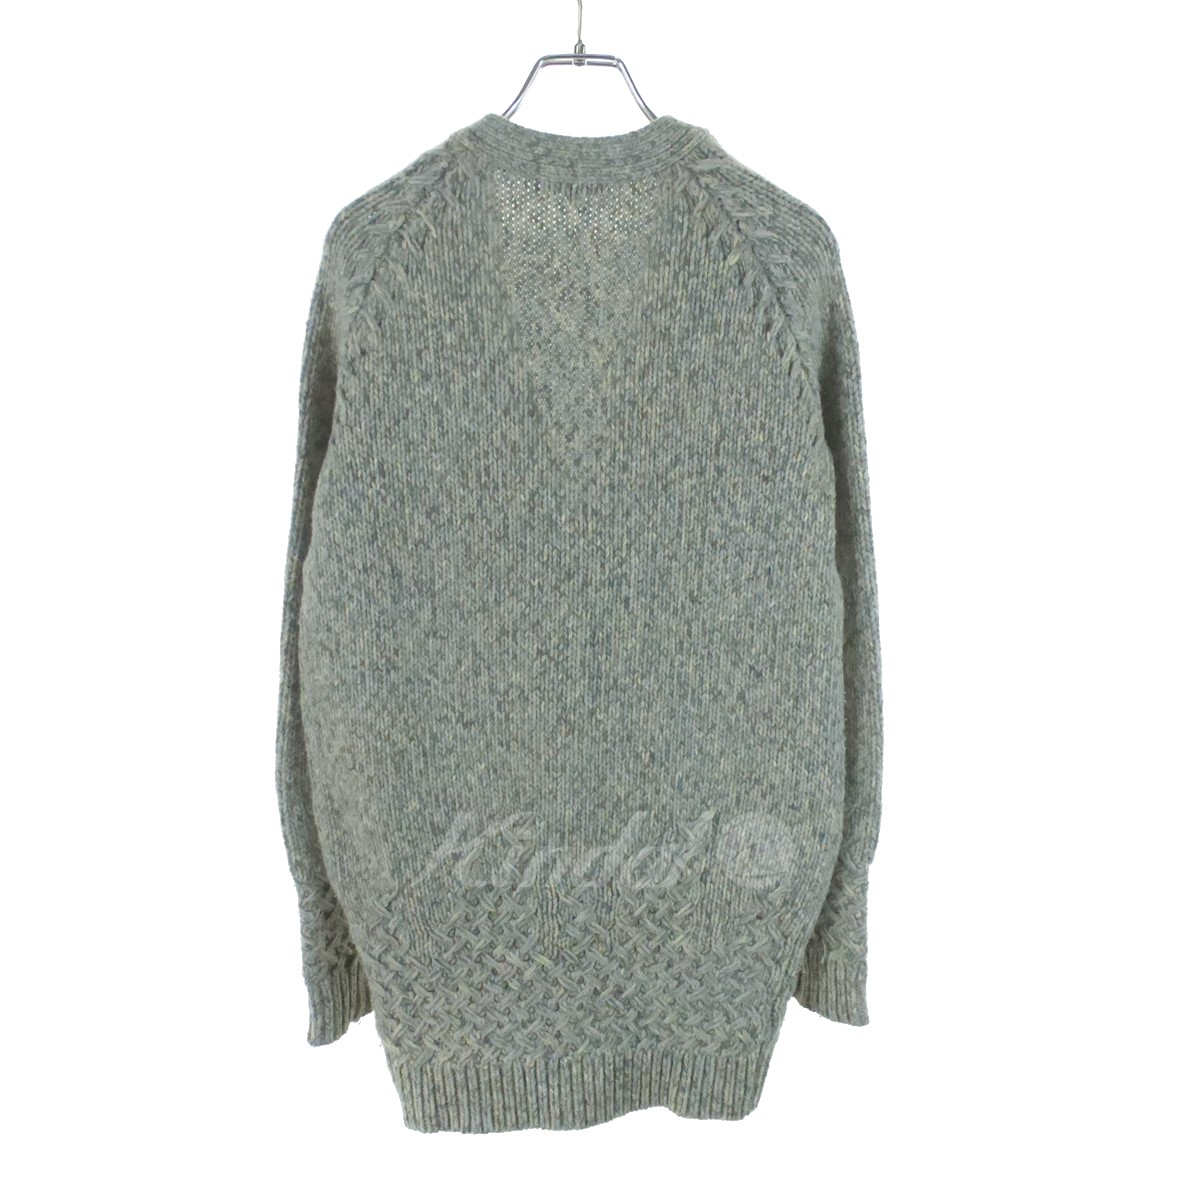 54340750fe1 kindal: Theory long knit cardigan gray mixture size: S (theory ...